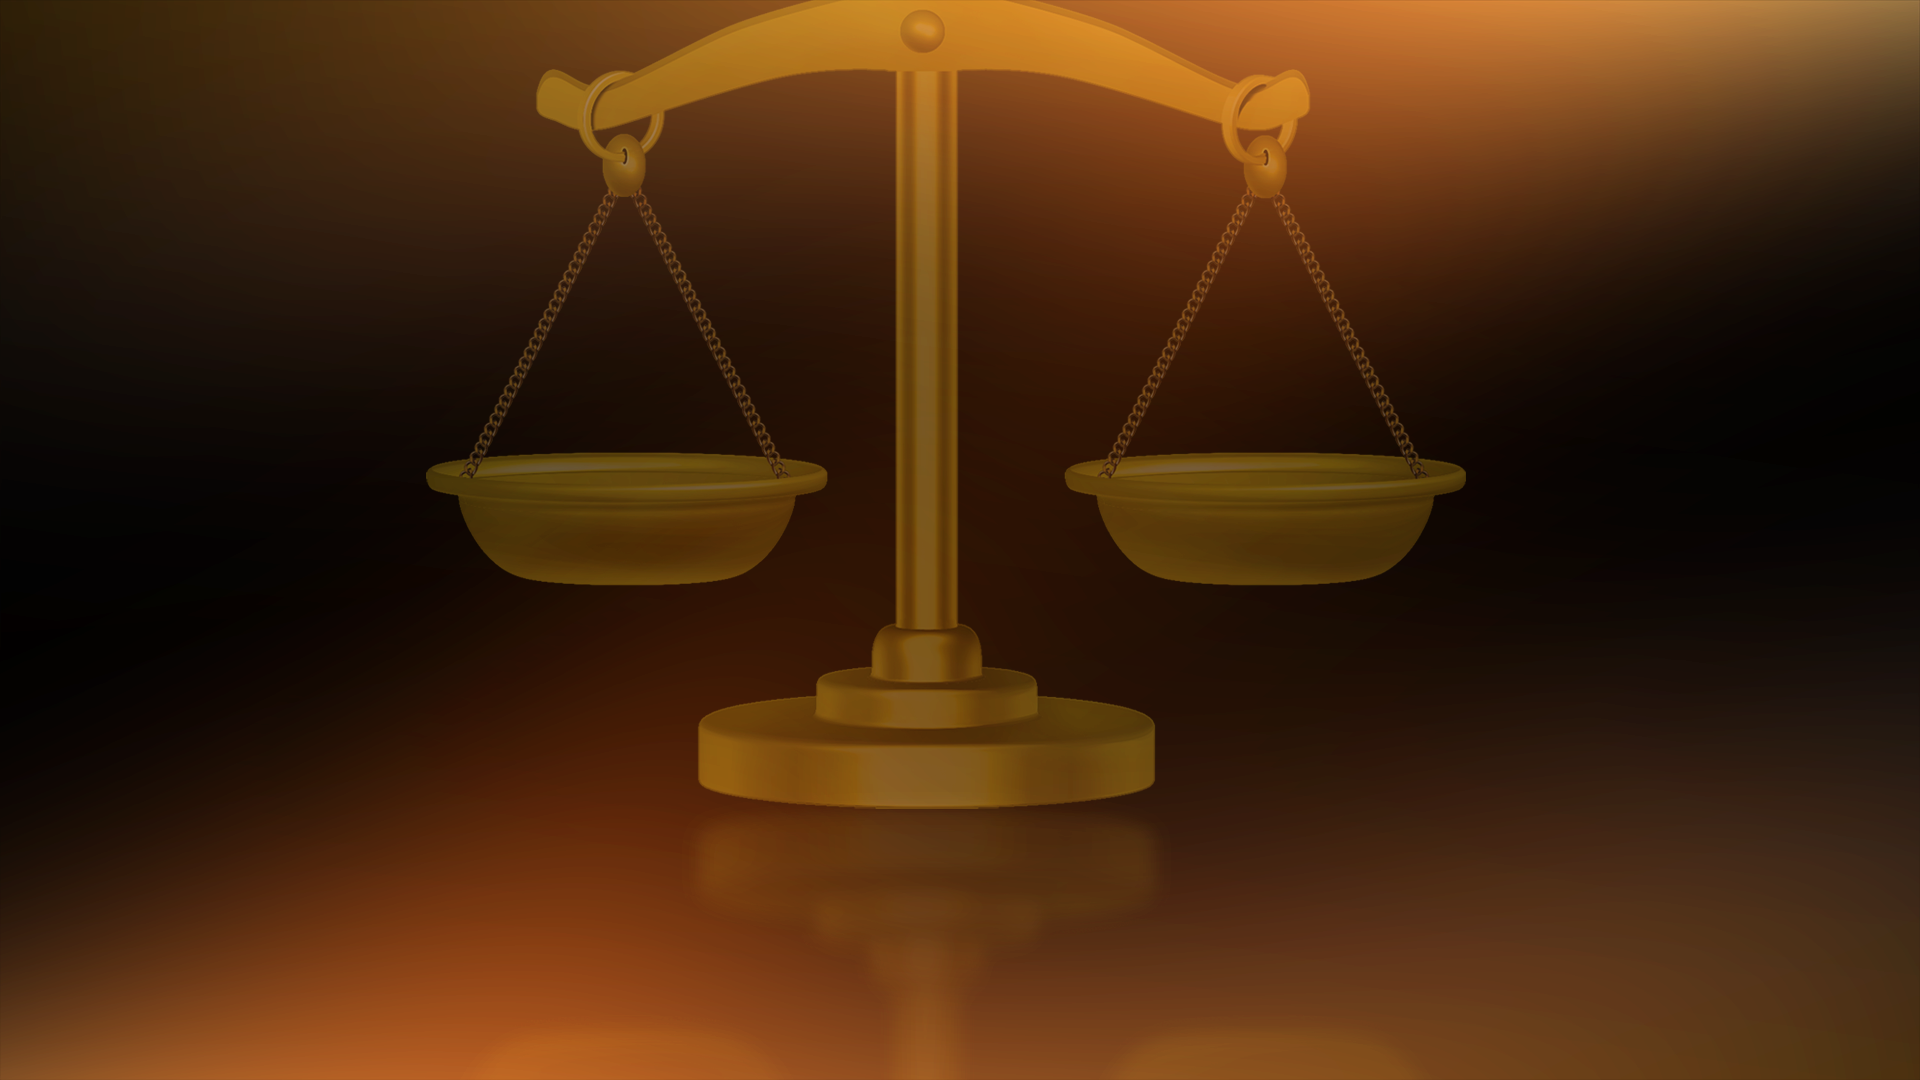 trial courts sentencing judge graphic 16by9